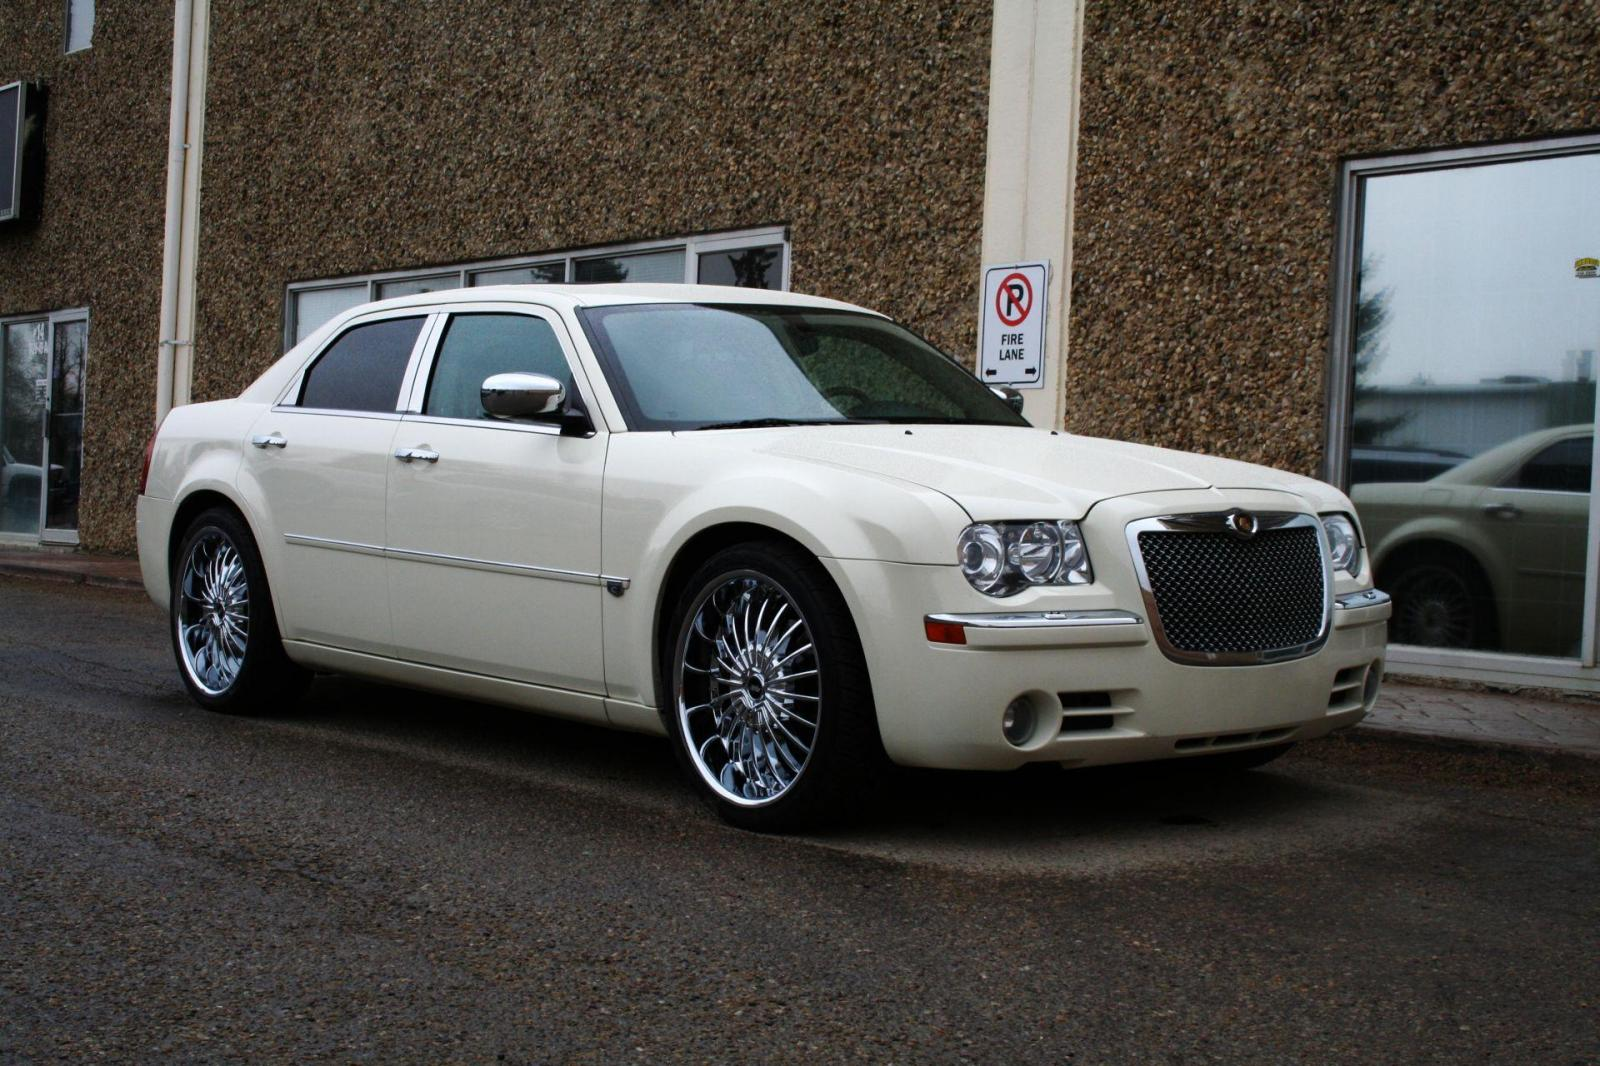 2009 chrysler 300 information and photos zombiedrive. Black Bedroom Furniture Sets. Home Design Ideas